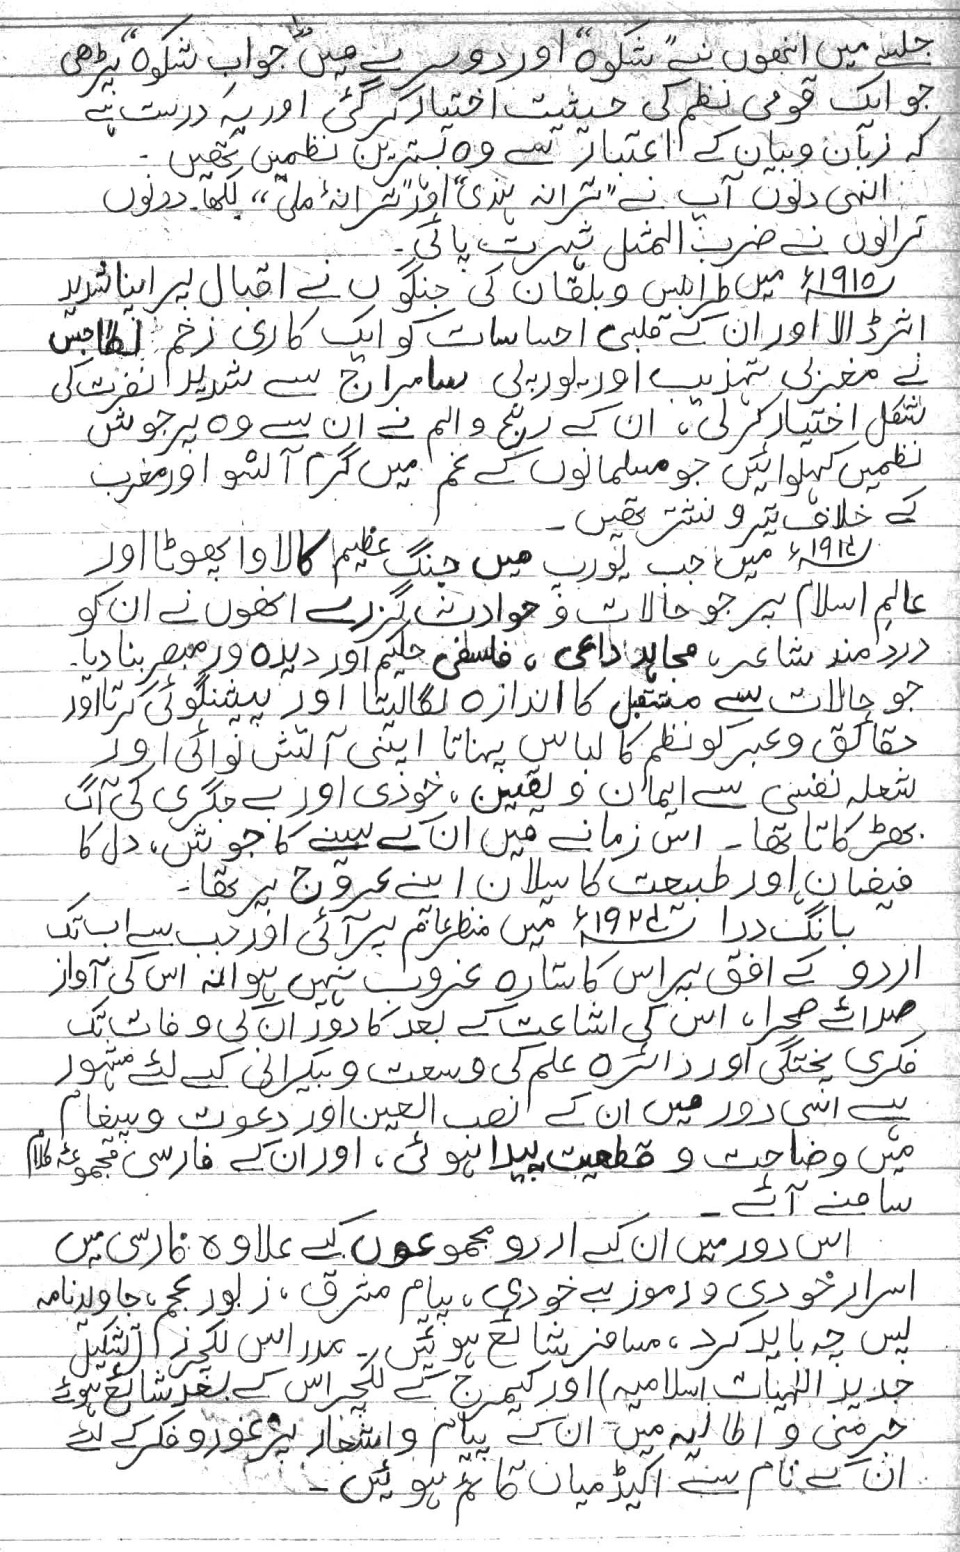 004 Urdu Essay Allama Iqbal Example Dreaded On In For Class 10 With Poetry Ka Shaheen Headings And 960